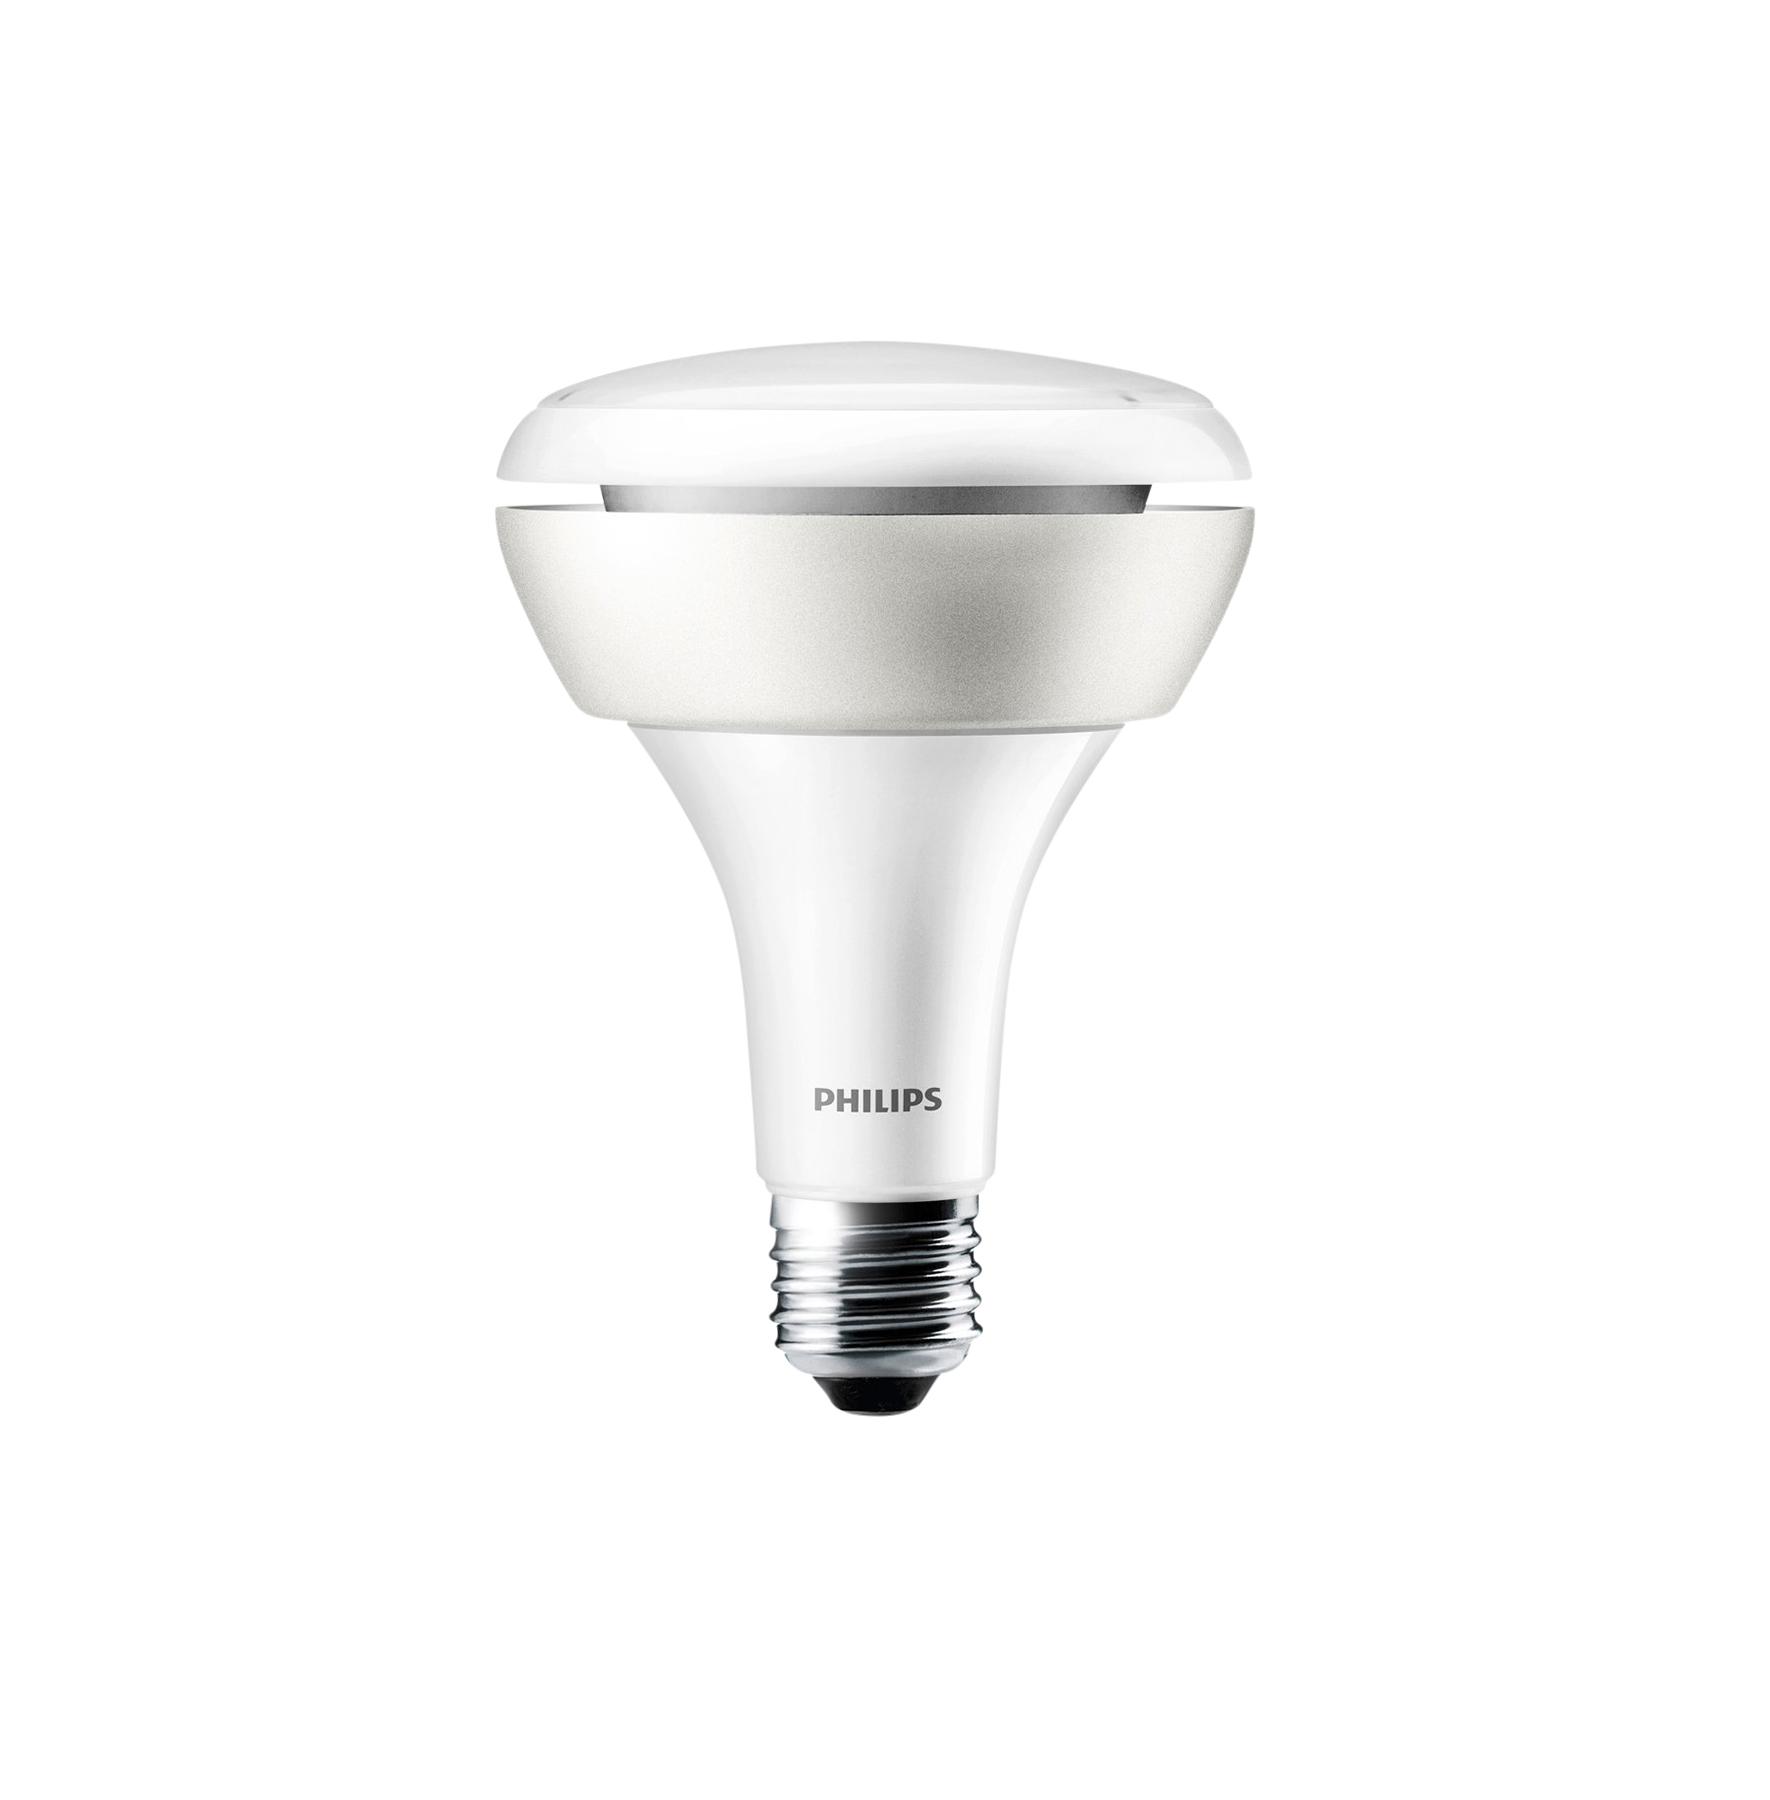 Philips Hue 65W BR30 connected bulb